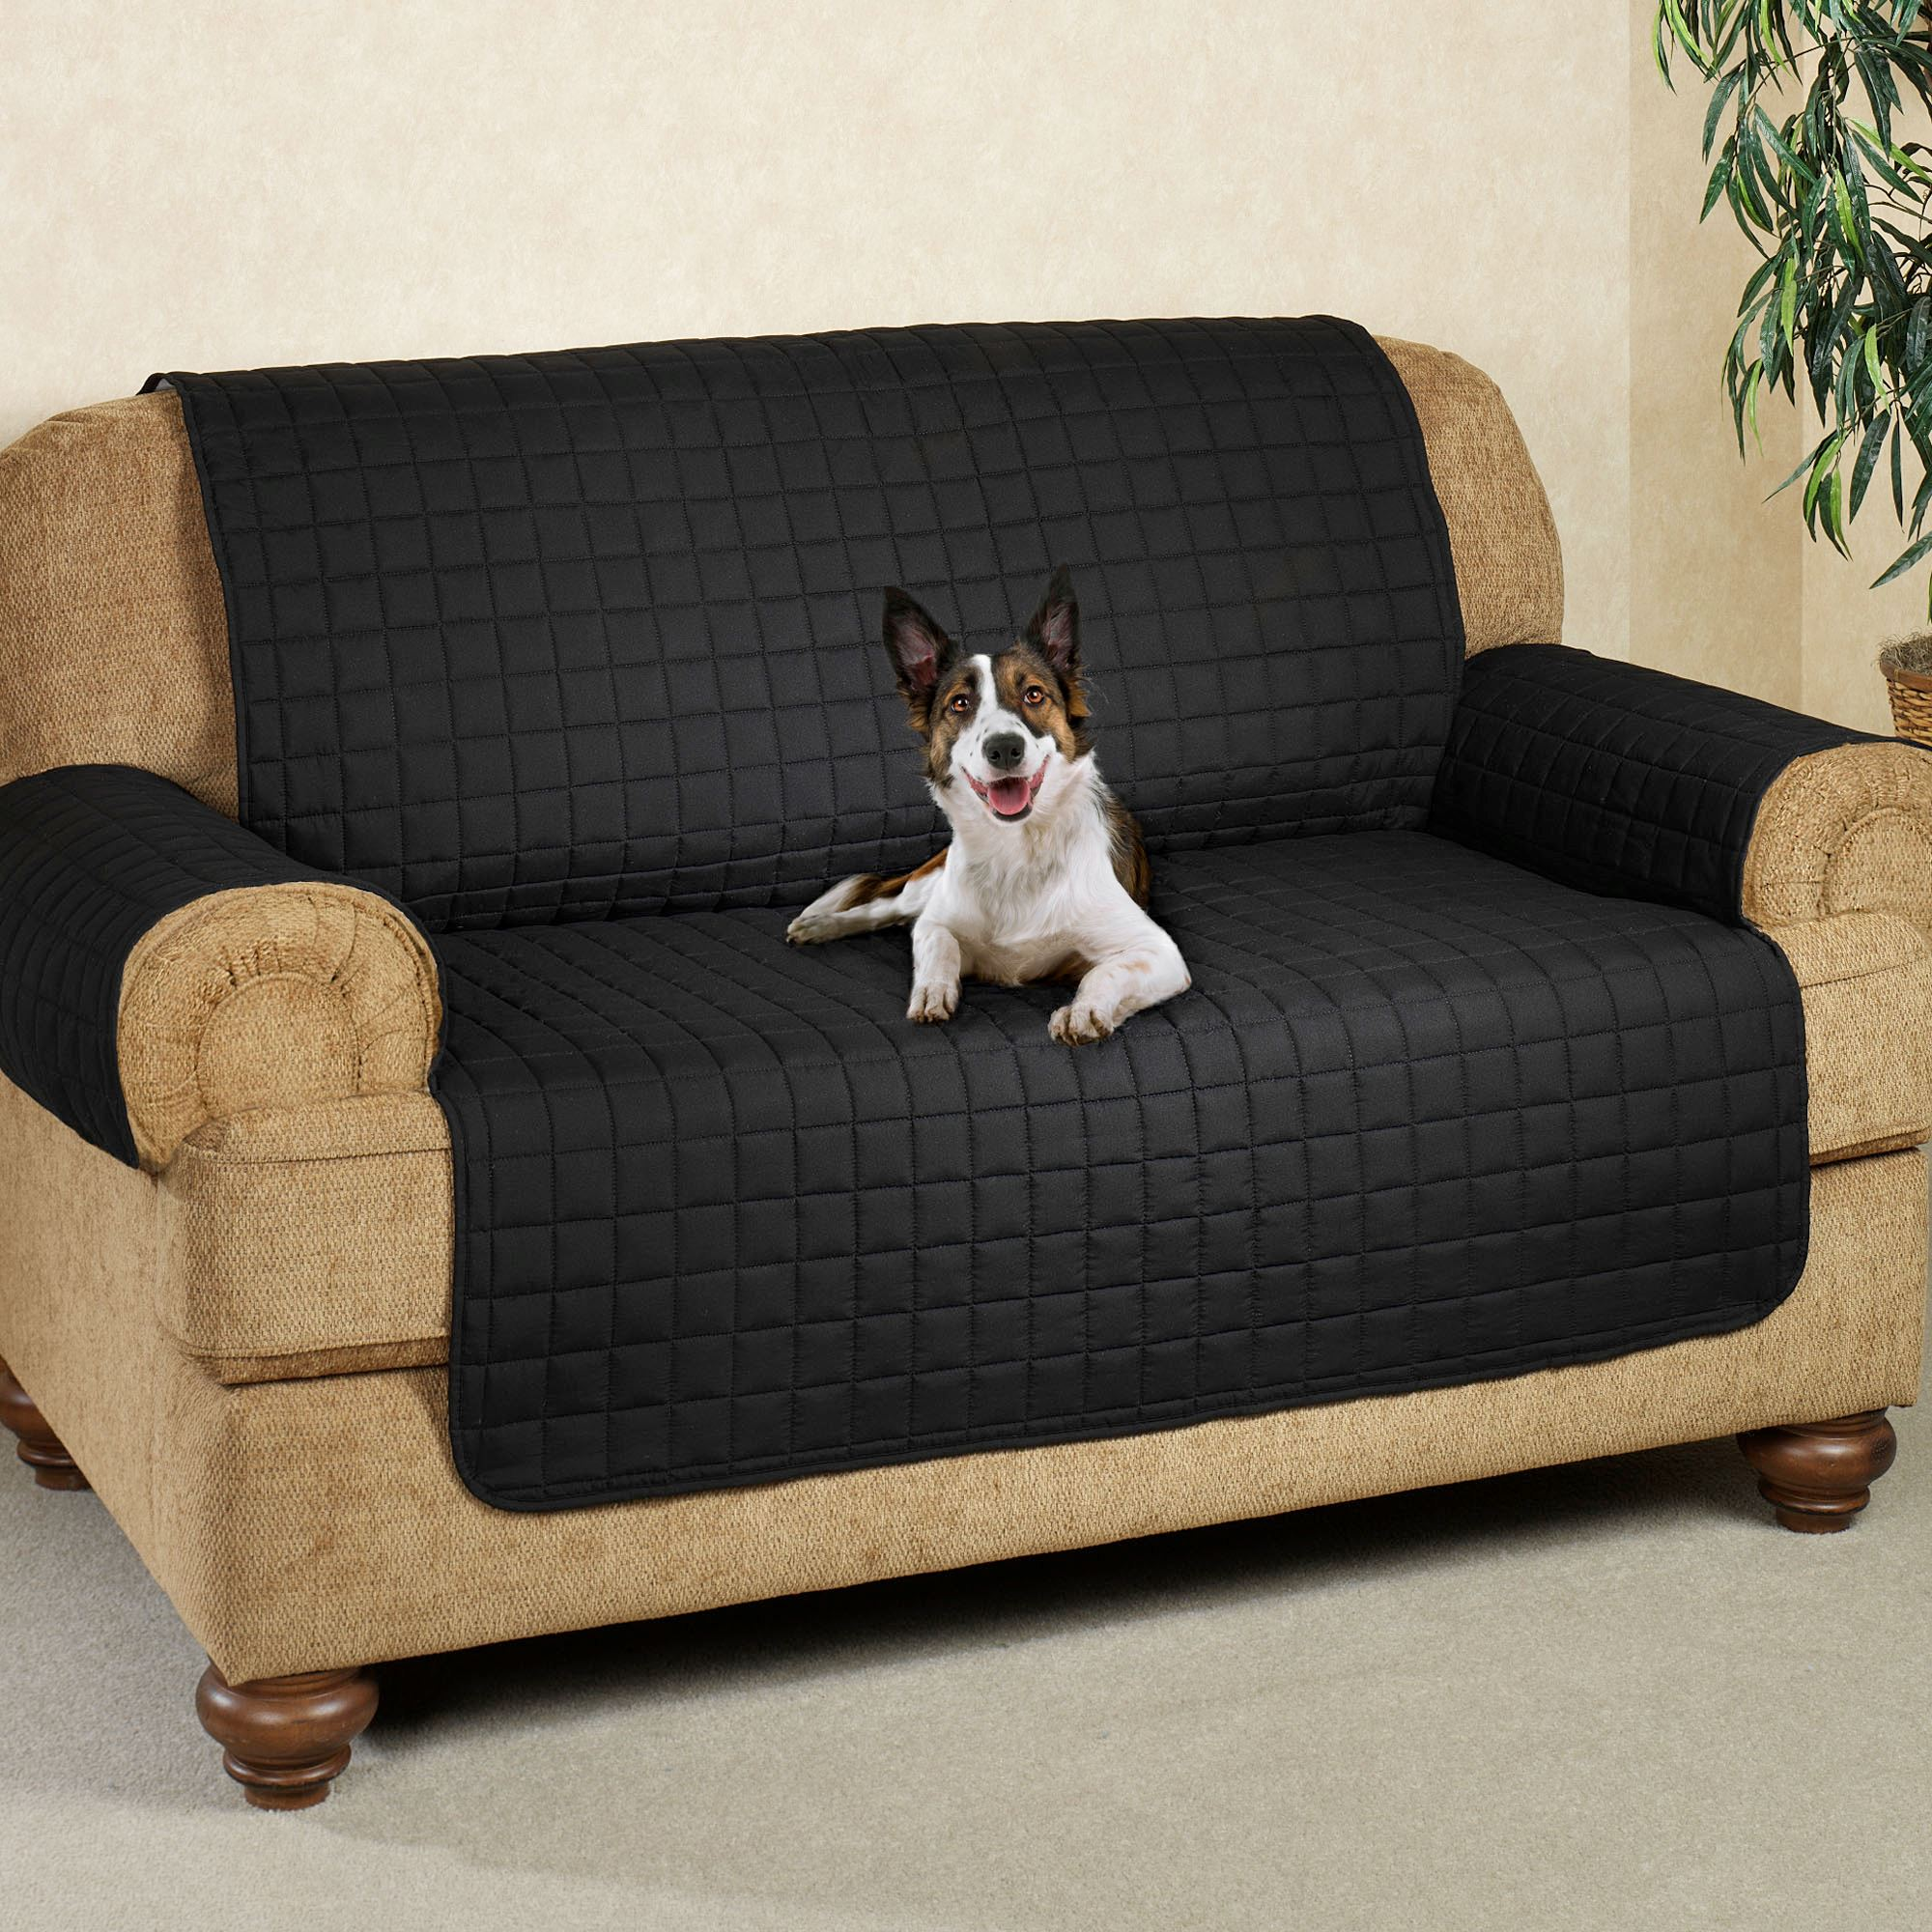 Surprising Microfiber Pet Furniture Covers With Tuck In Flaps Ncnpc Chair Design For Home Ncnpcorg